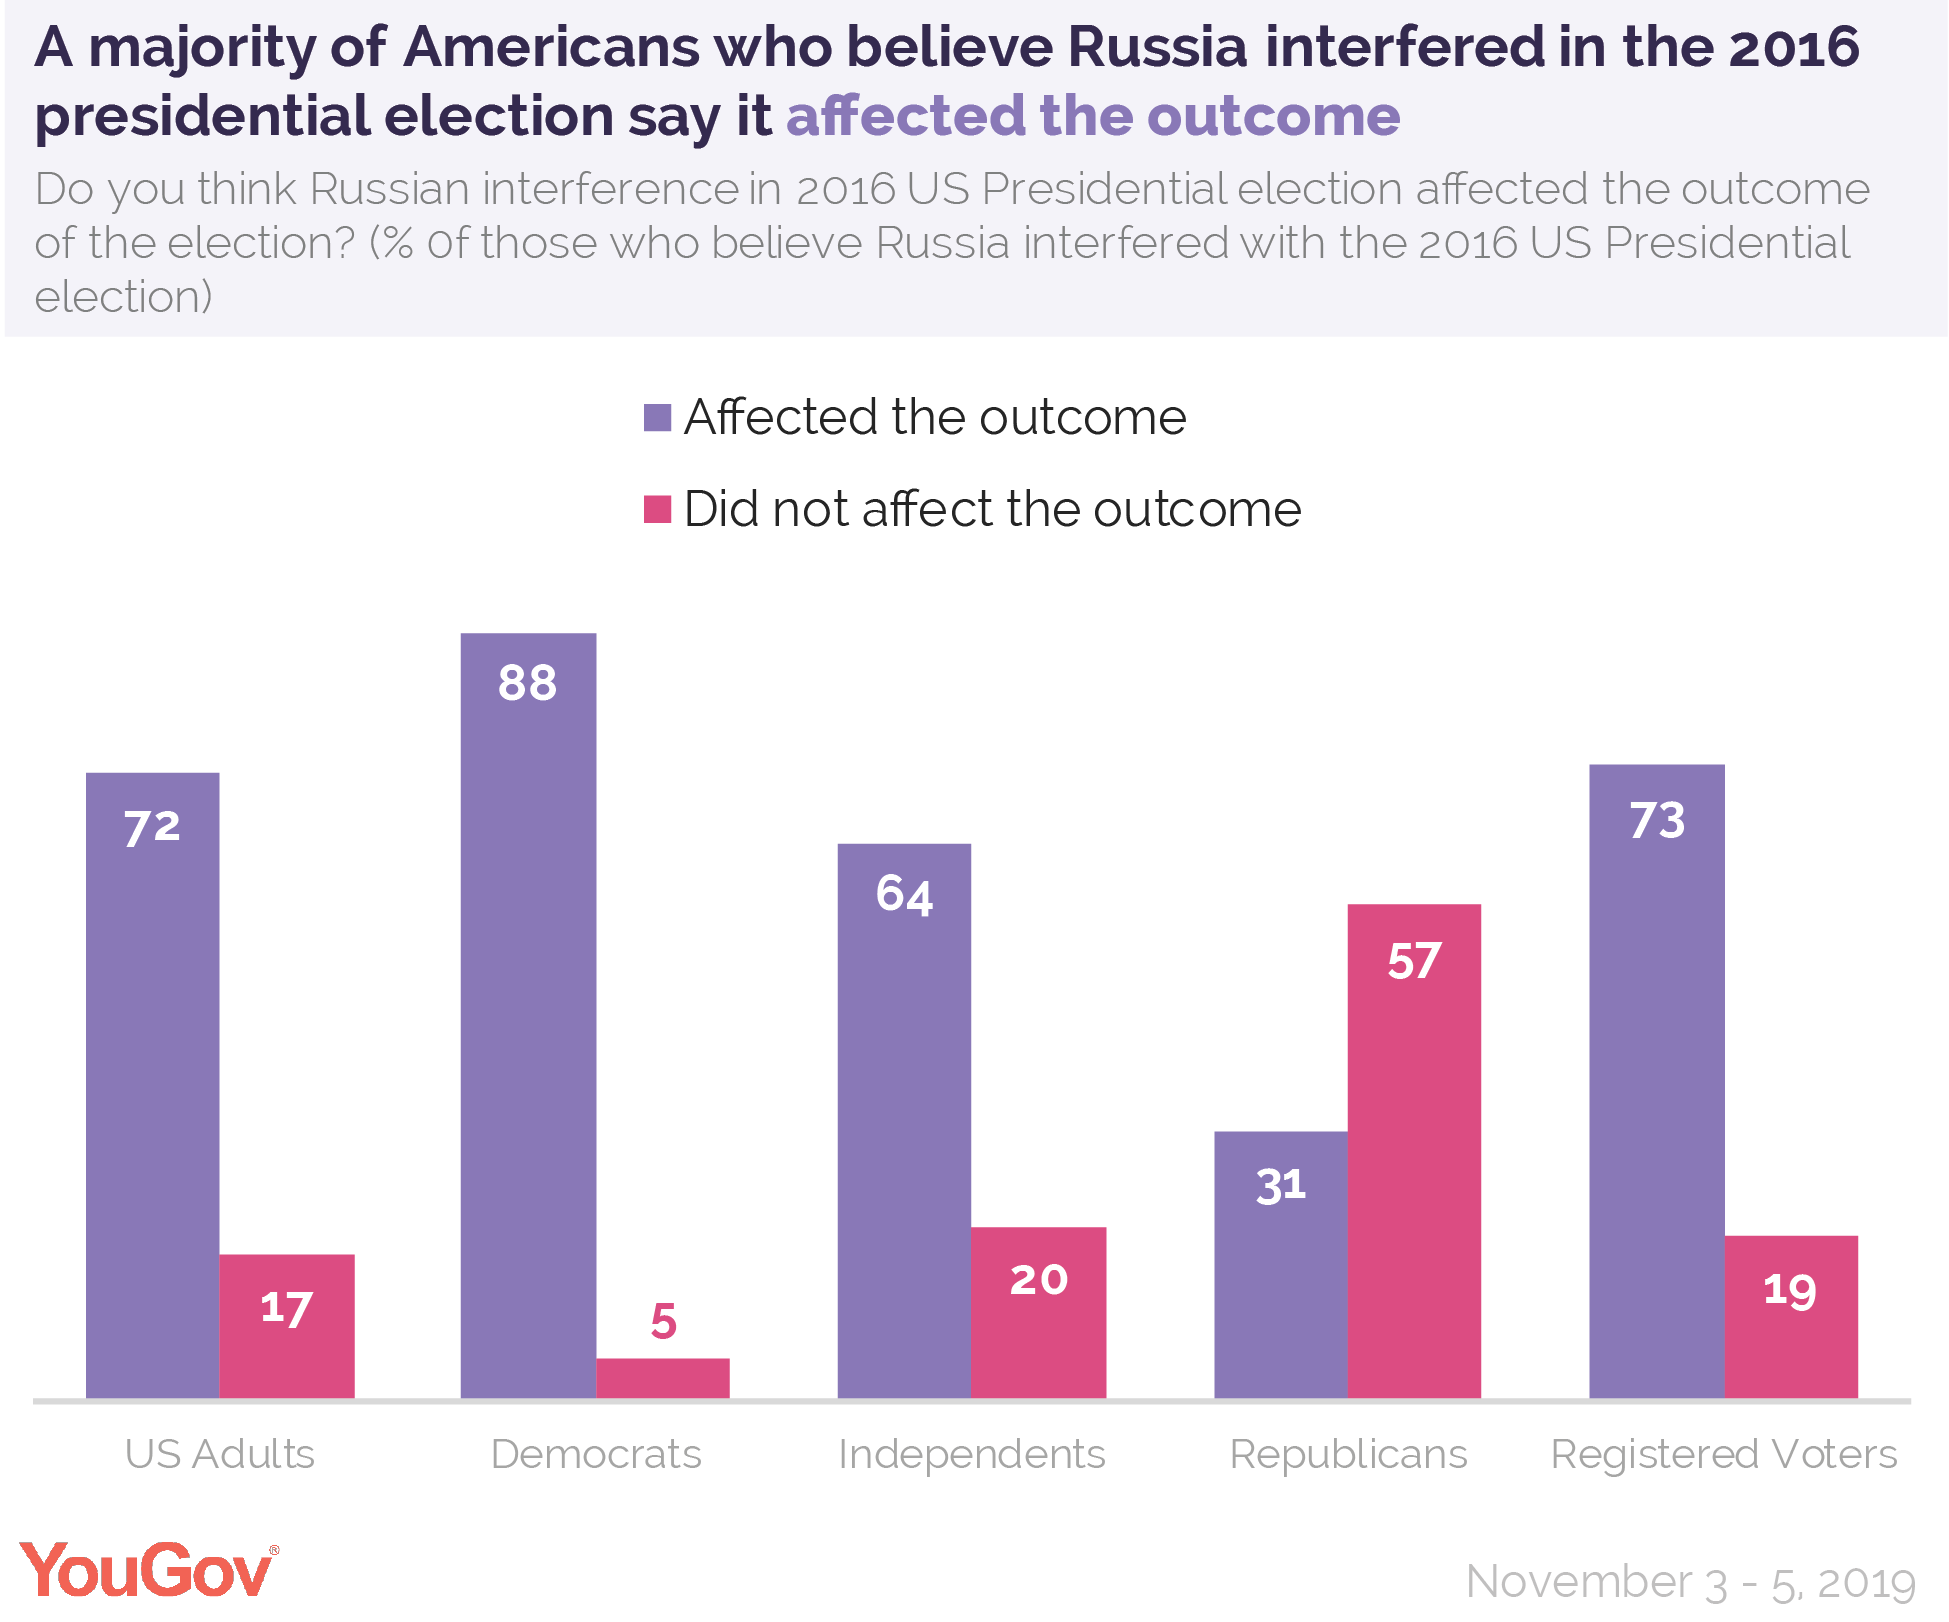 A majority of Americans who believe Russia interfered in the 2016 presidential election say it affected the outcome